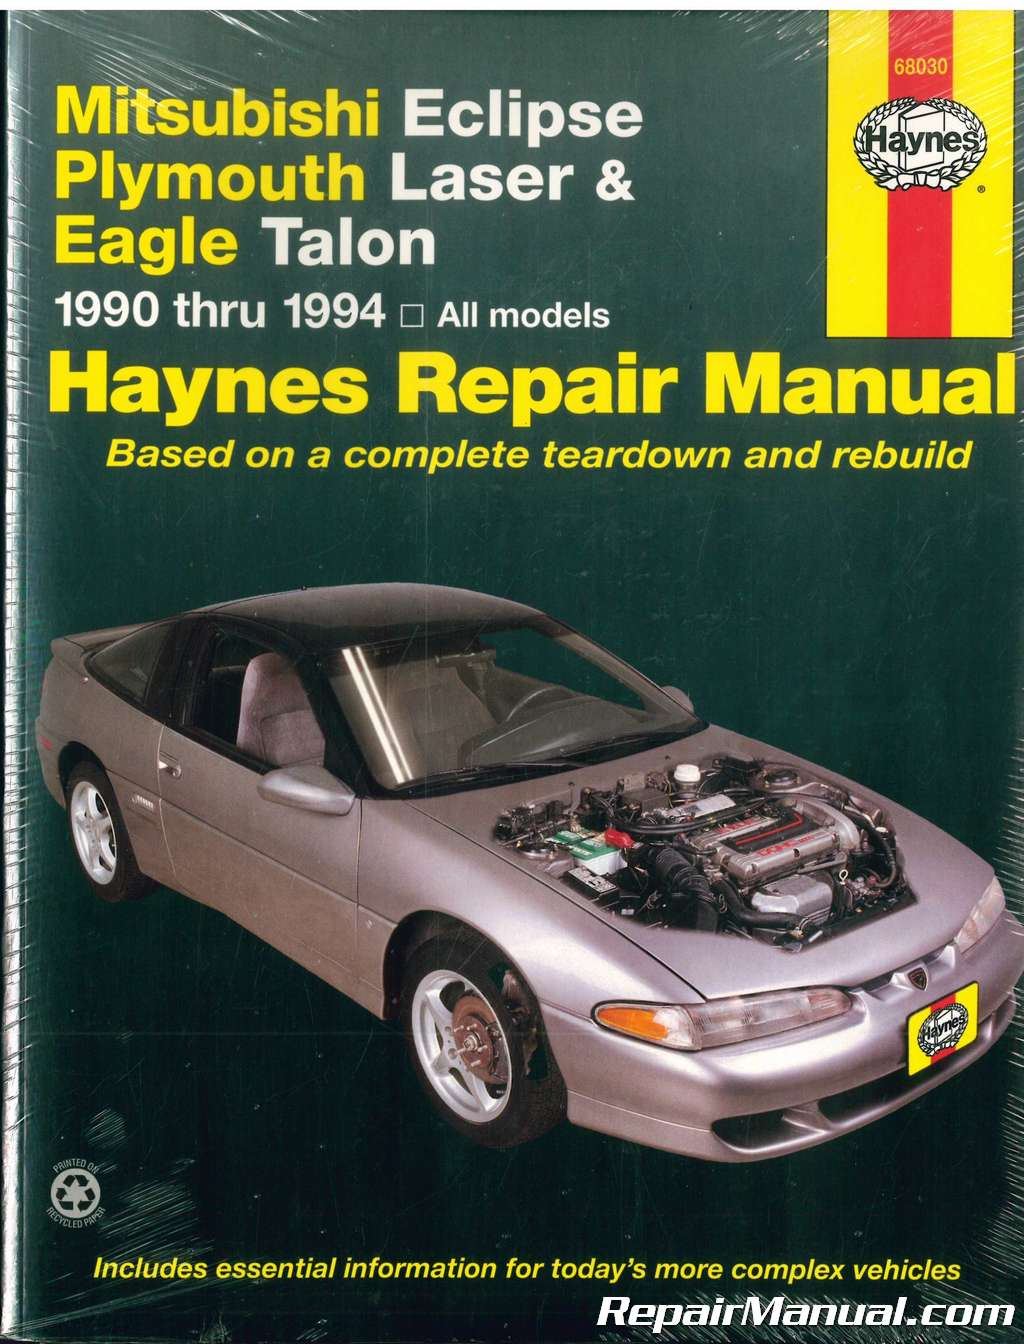 1990 1994 haynes mitsubishi eclipse plymouth laser eagle talon Volvo 240 Wiring Diagram 1990 1994 haynes mitsubishi eclipse plymouth laser eagle talon auto repair manual